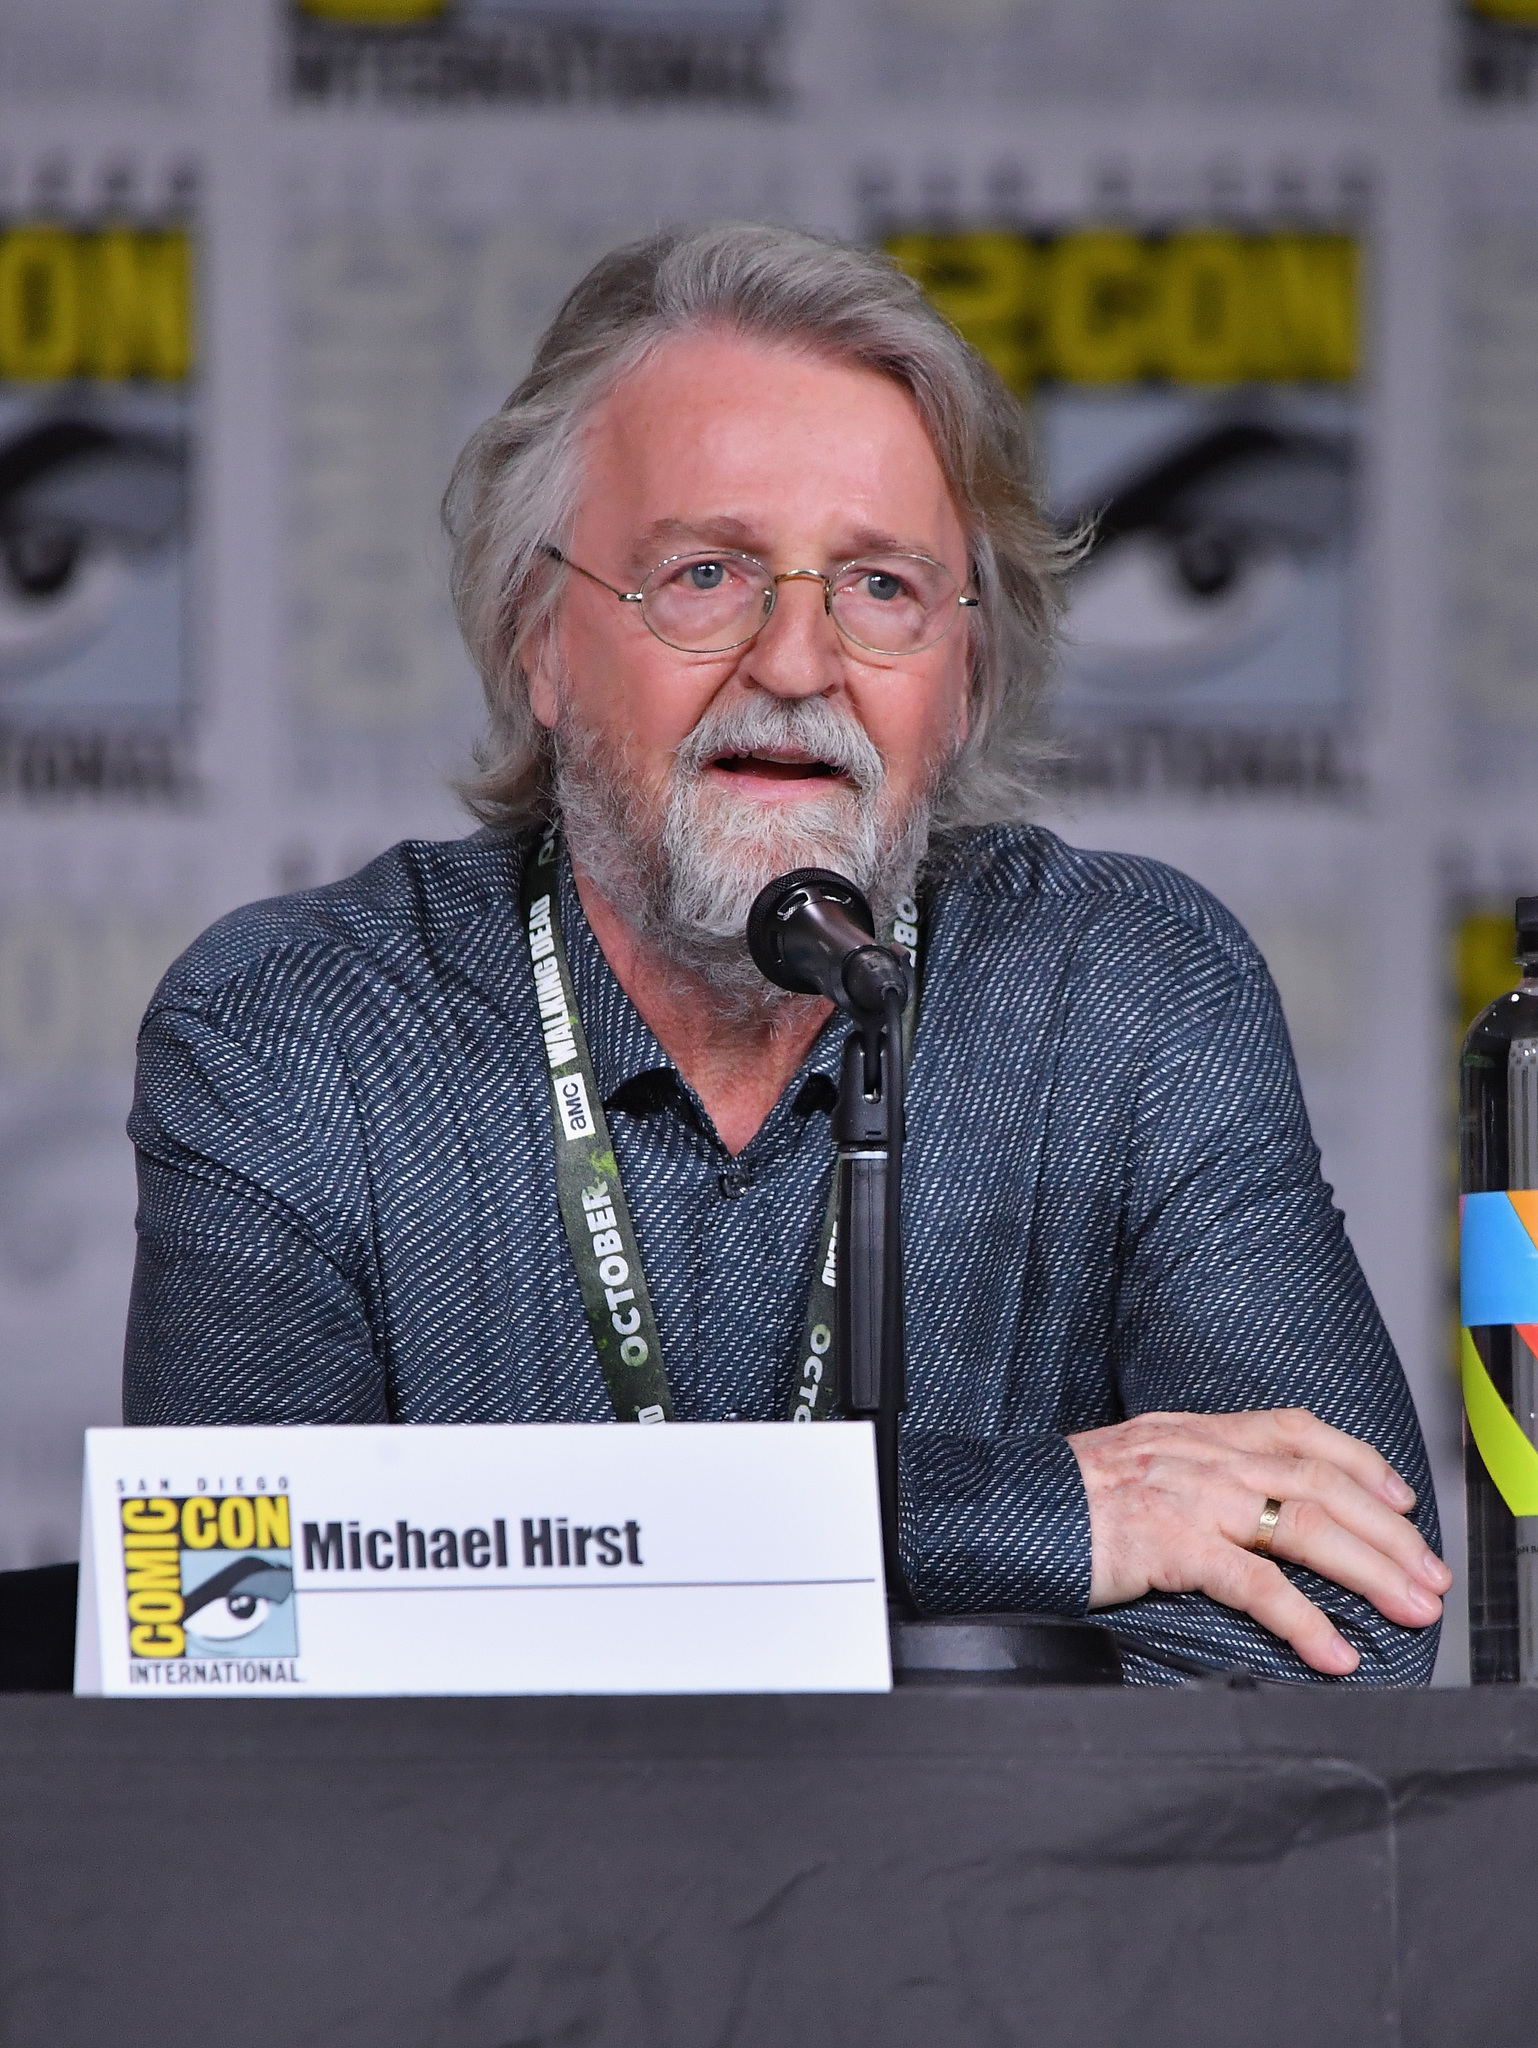 Michael Hirst at an event for Vikings (2013)